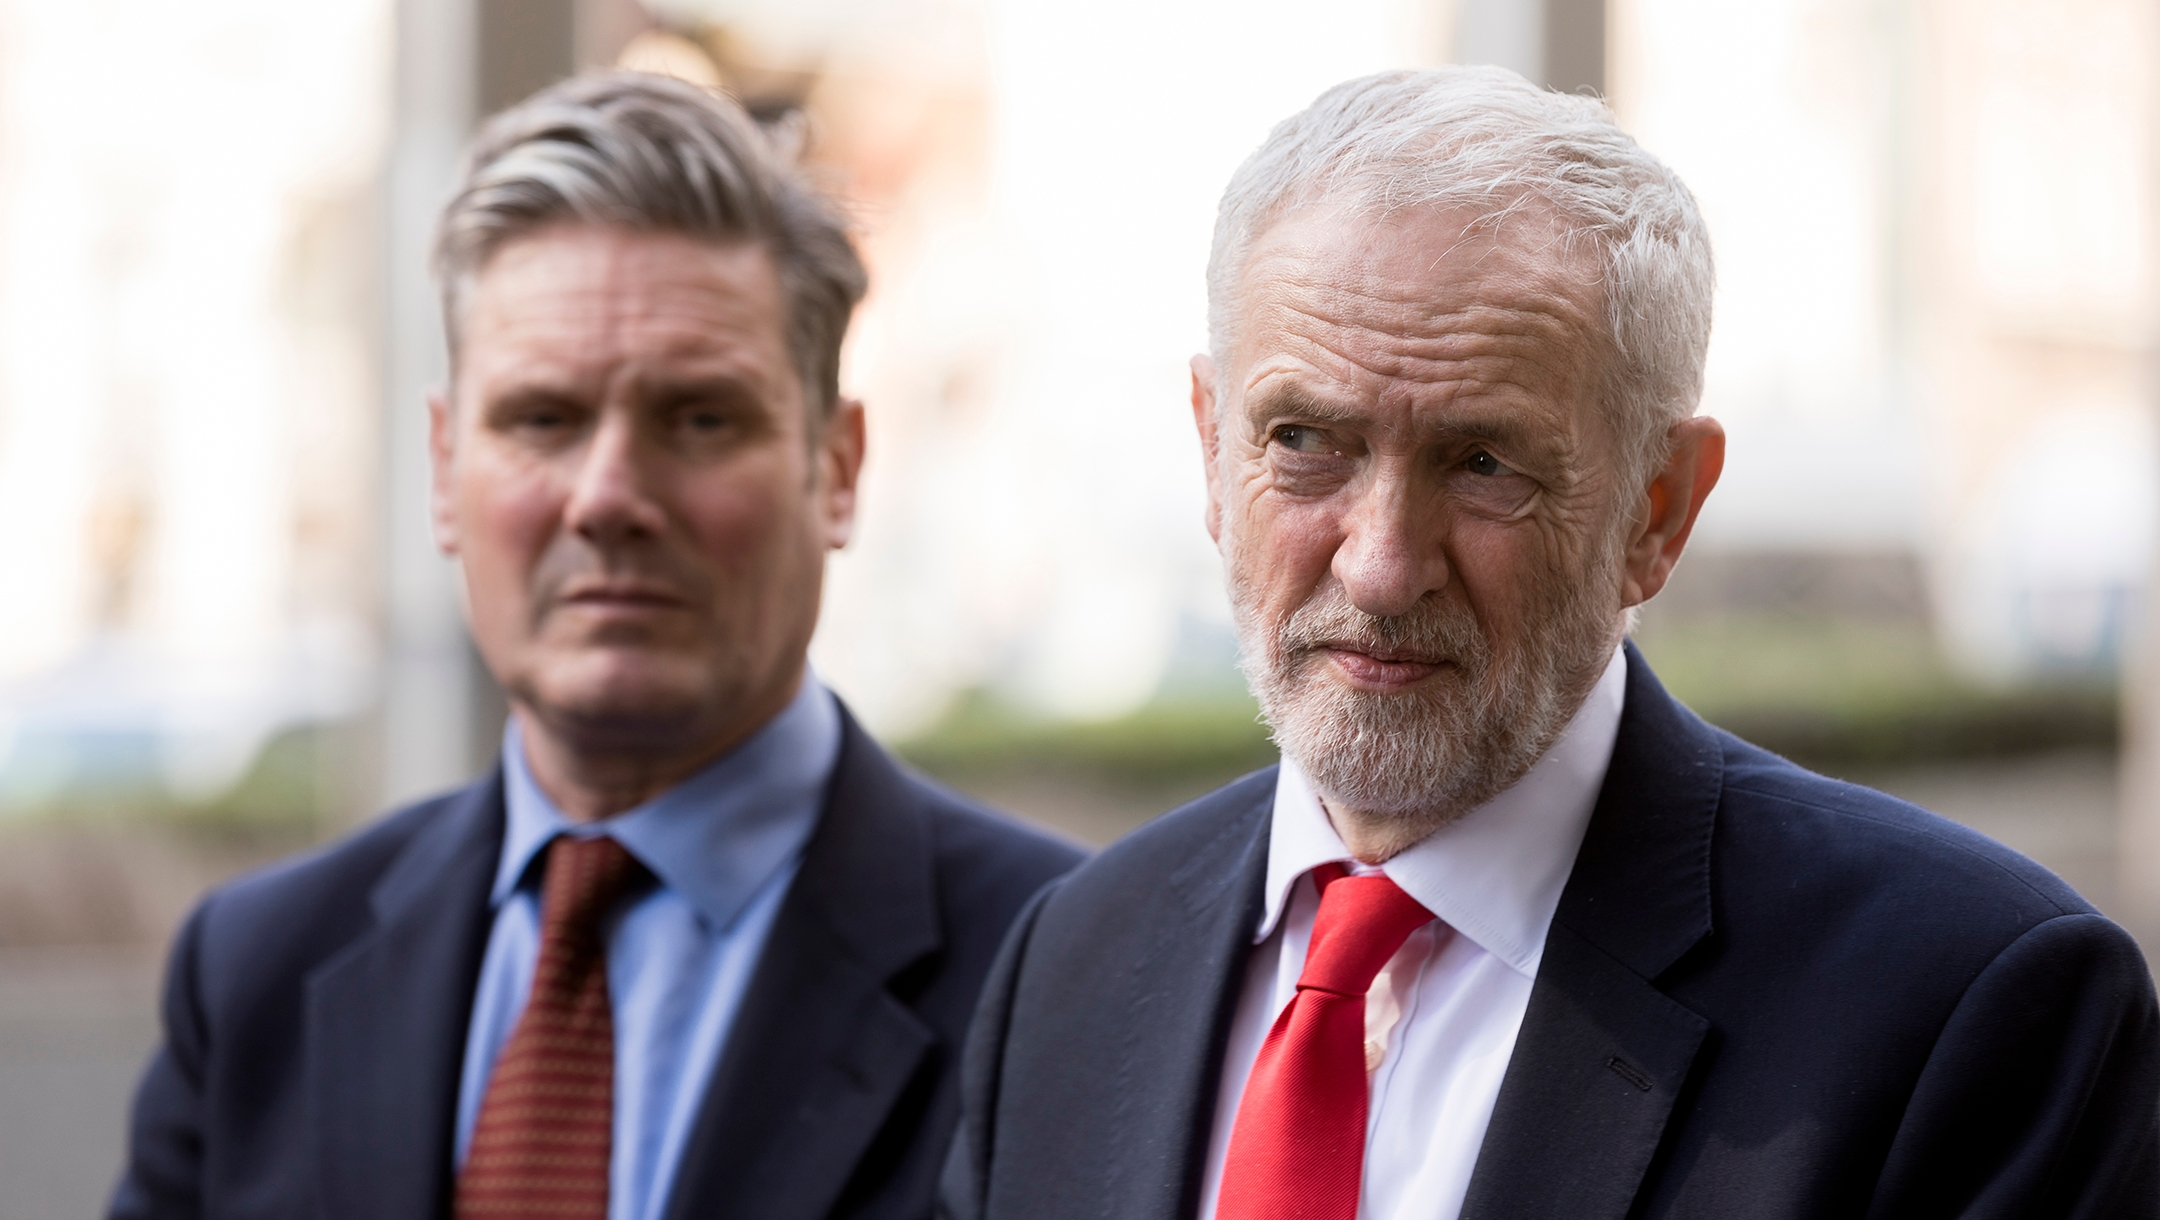 Corbyn suspended from Labour after report finds the British party committed 'unlawful harassment' against Jews